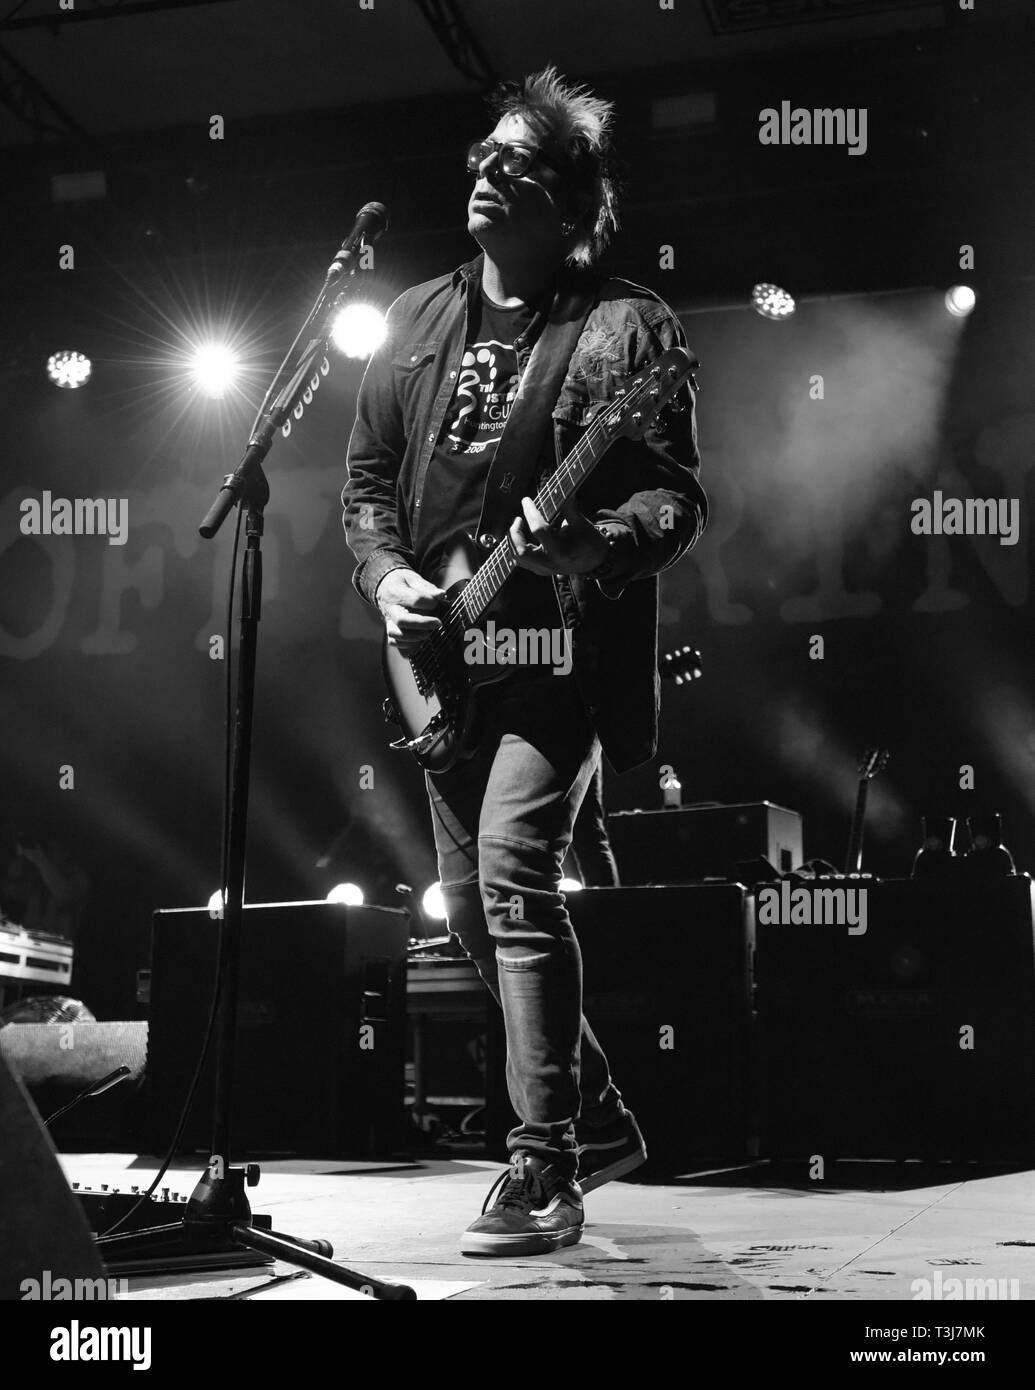 April 7, 2019 - Dana Point, California, USA - Lead guitist NOODLES (Kevin John Wasserman) of The Offspring performs at the Sabroso Craft Beer, Taco & Music Festival 2019 Sunday (Day 2) at Doheny State Beach in Dana Point, California. (Credit Image: © Billy Bennight/ZUMA Wire) - Stock Image